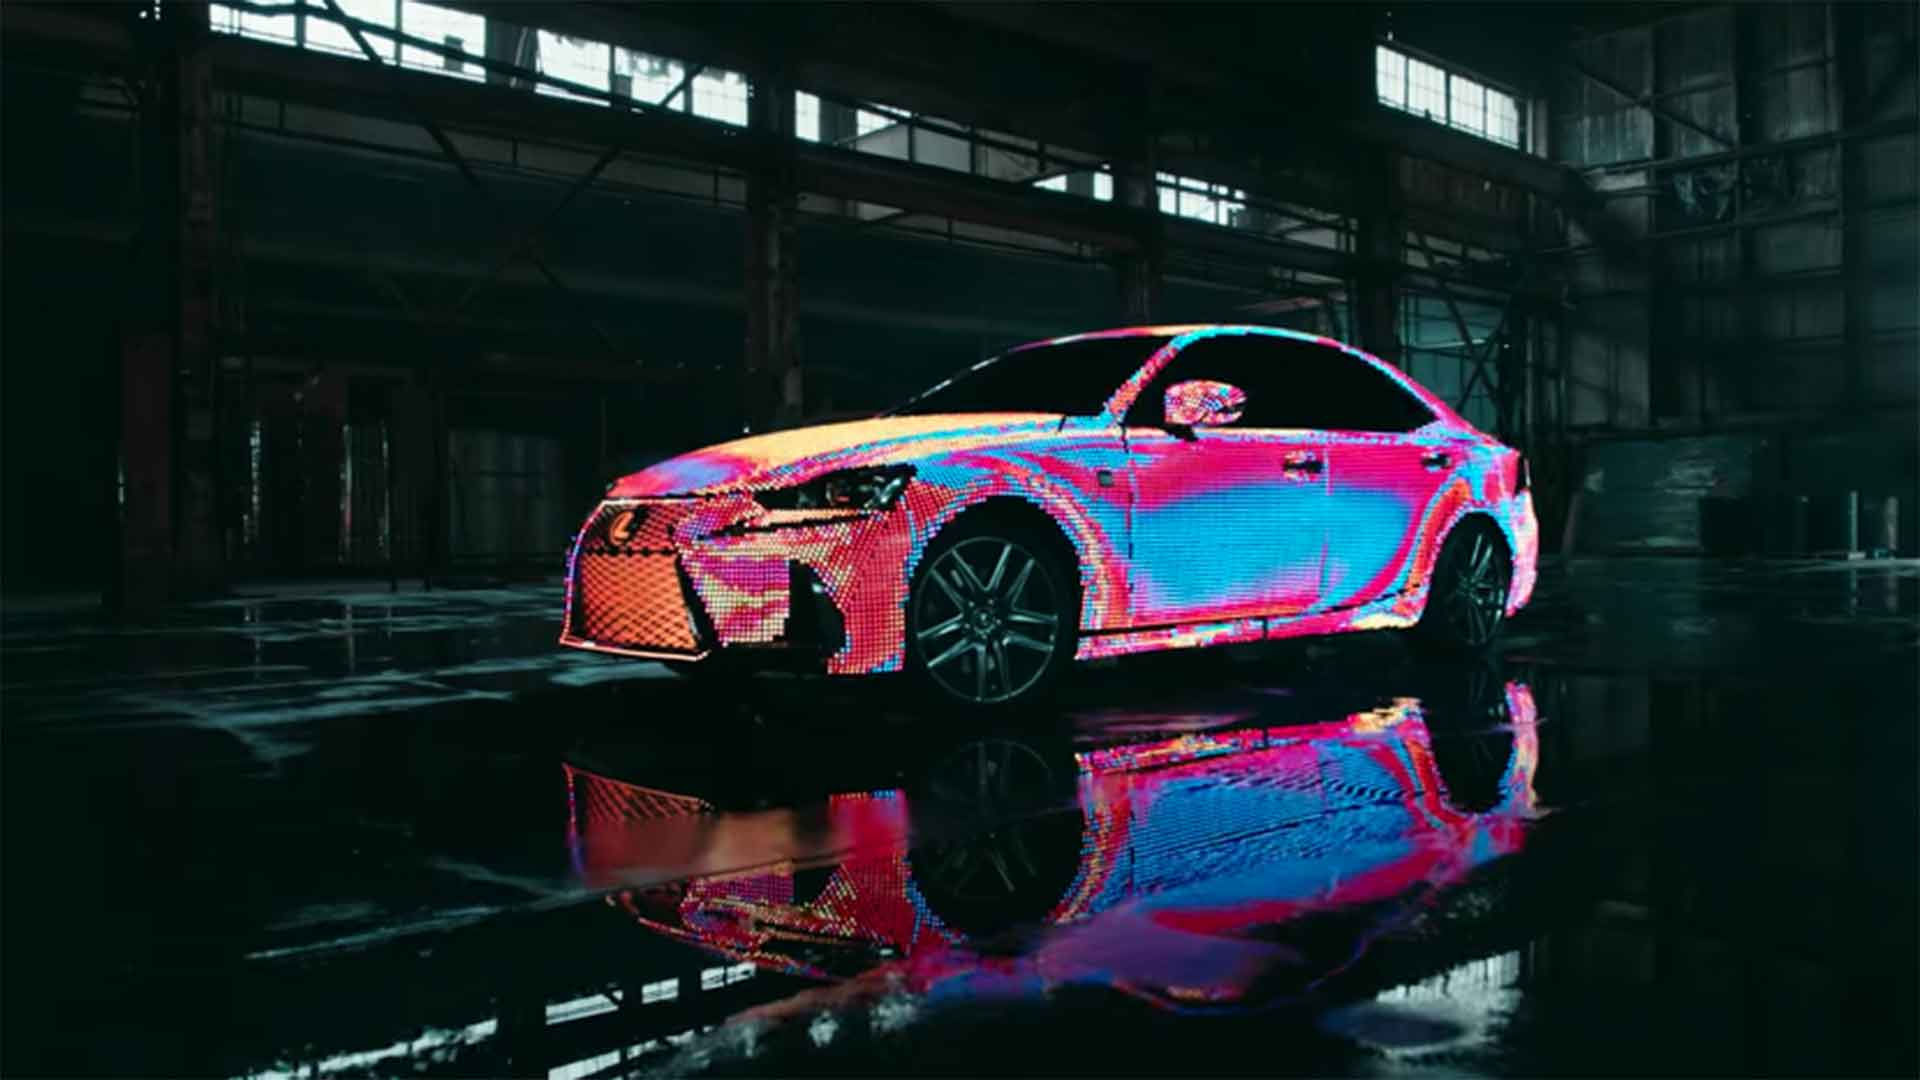 Cars Wallpaper Gta Watch 41 999 Leds Continuously Change The Colour Of This